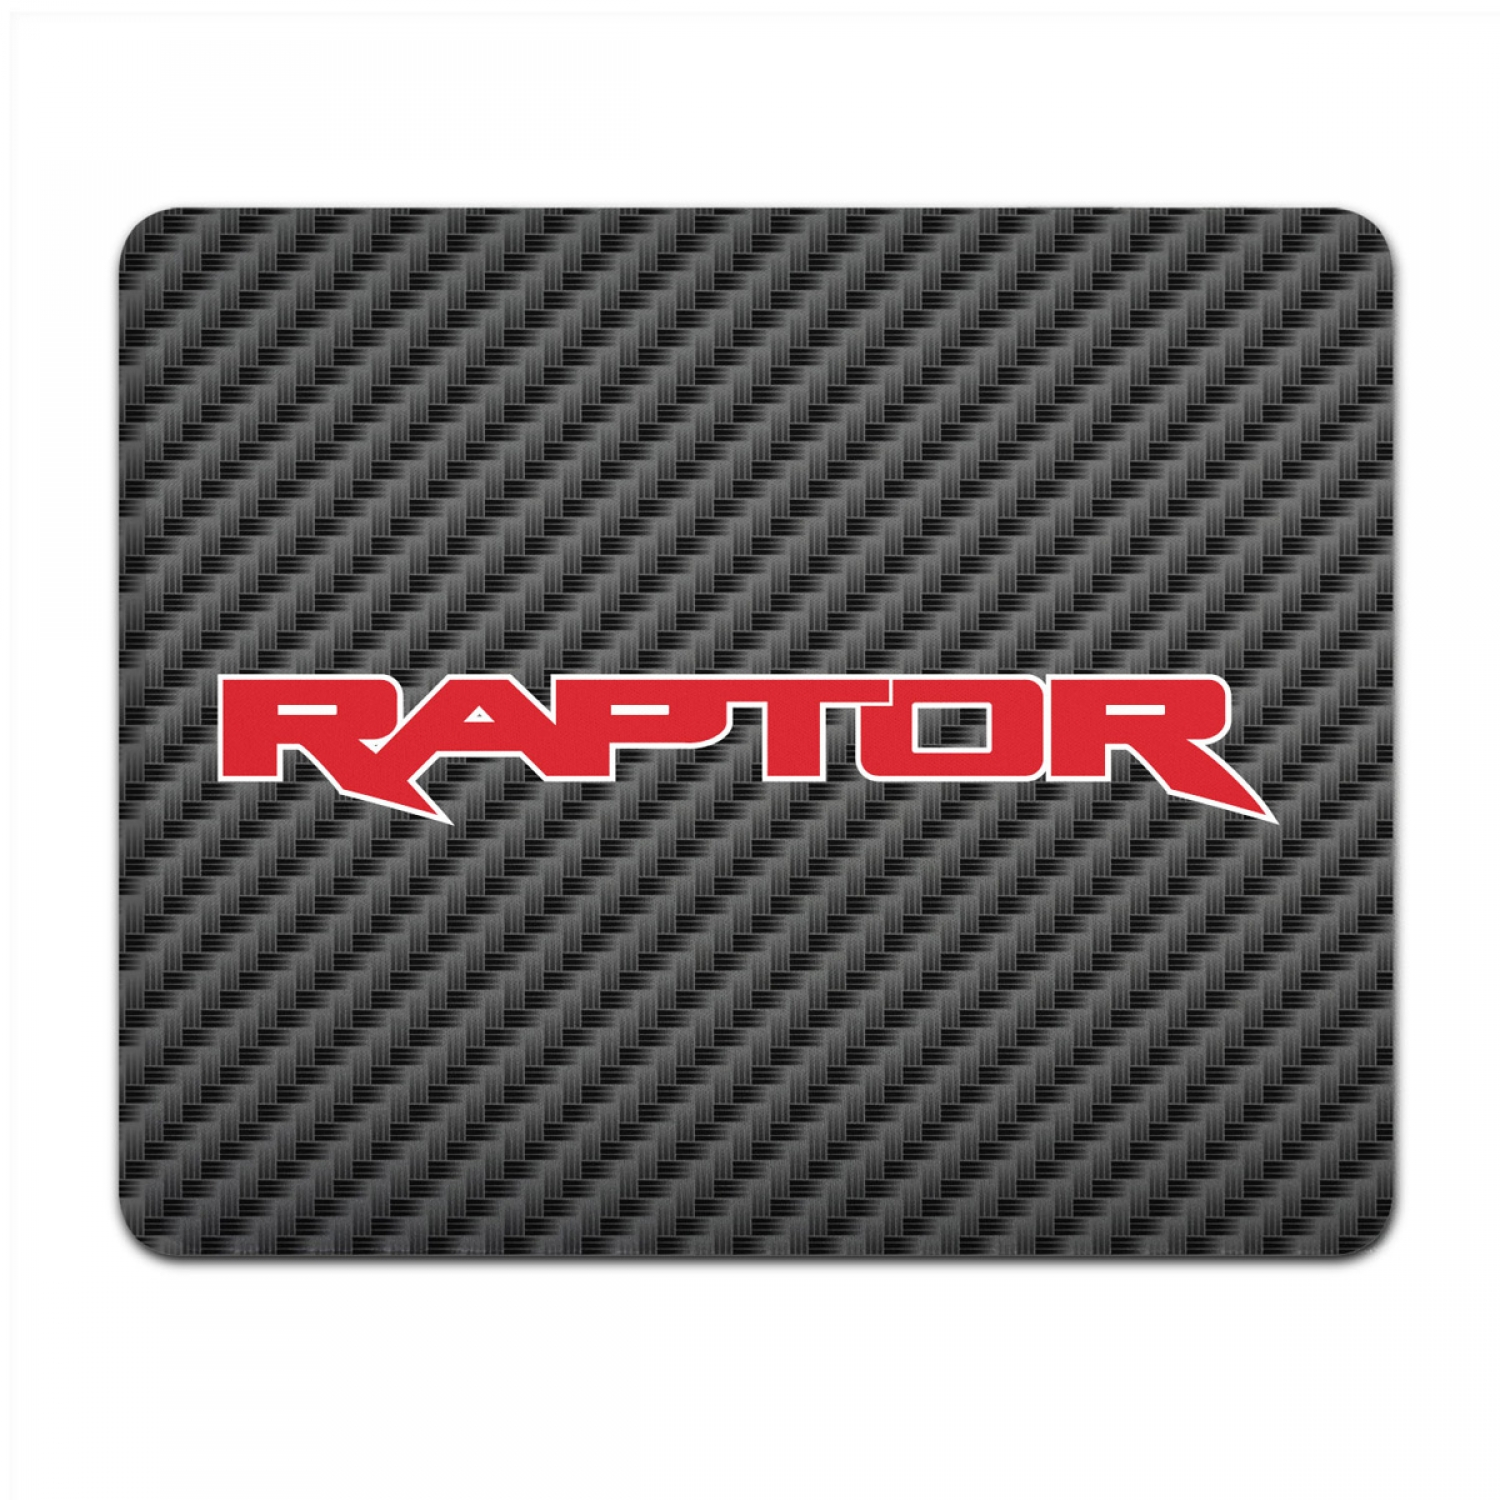 Ford F-150 Raptor 2017 in Red Black Carbon Fiber Texture Graphic PC Mouse Pad